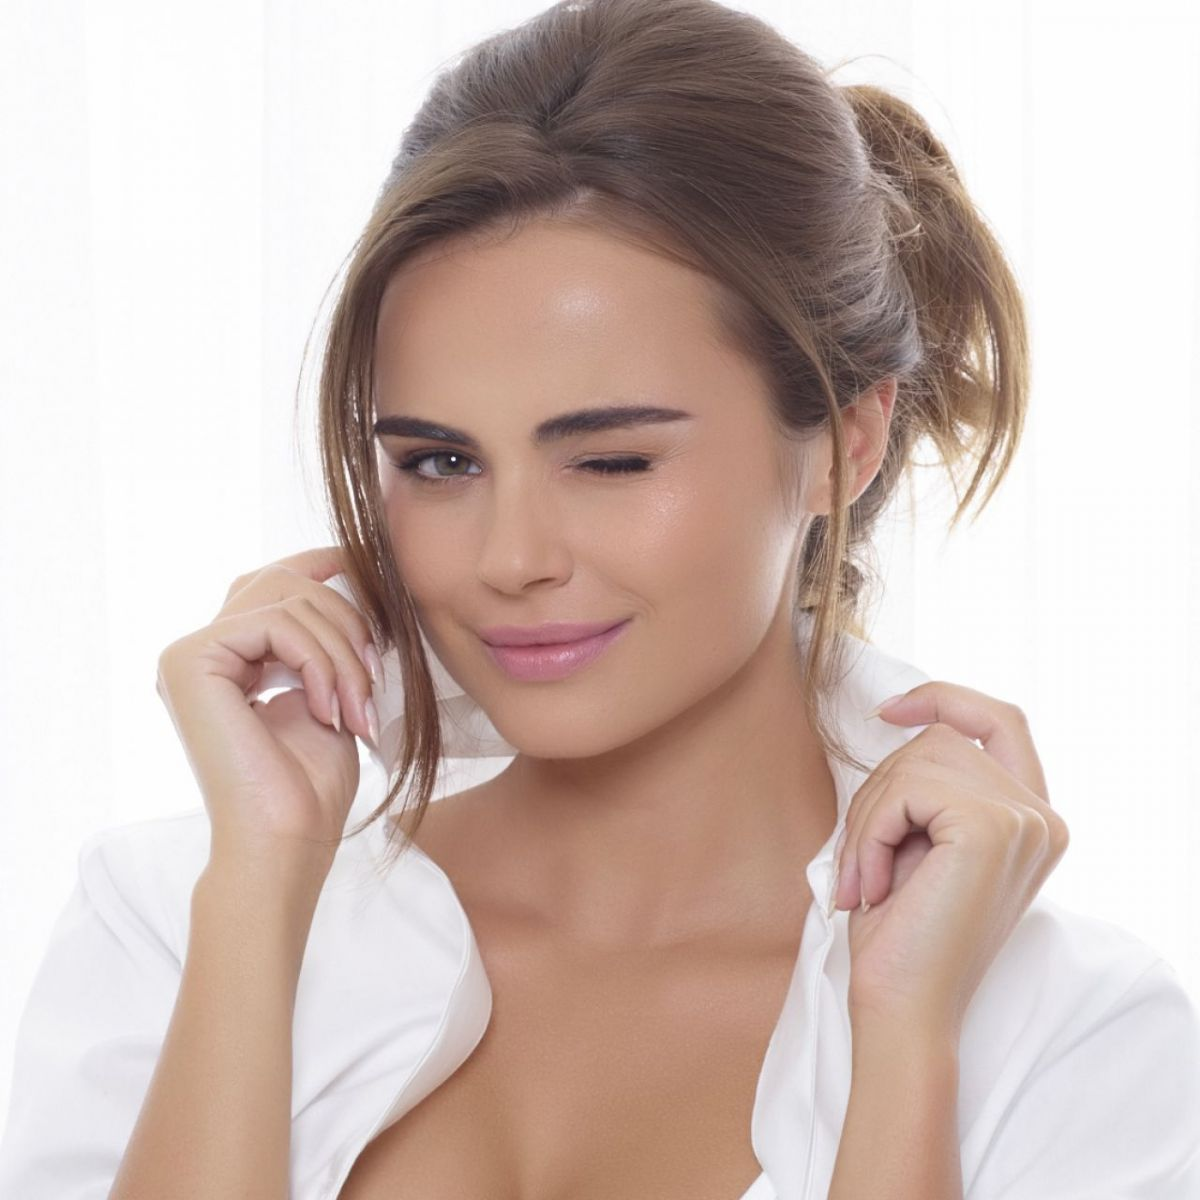 XENIA DELI - Isadora Photoshoot, May 2017